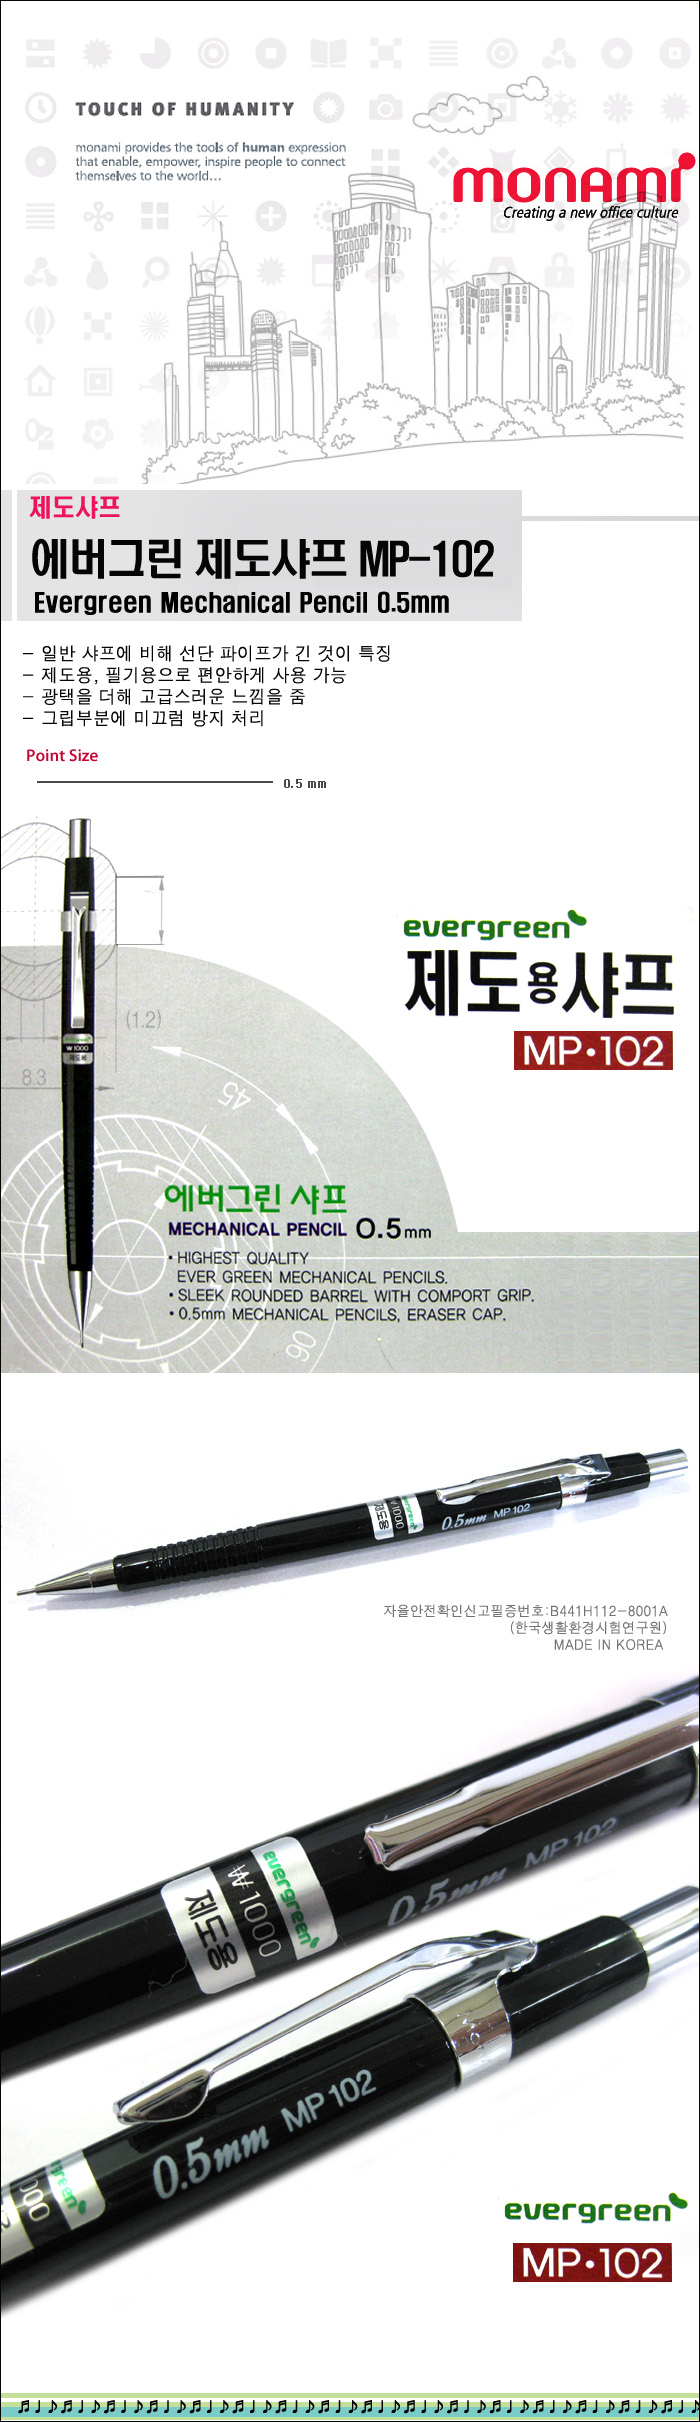 MONAMI evergreen Mechanical Drafting Pencils 0.5mm